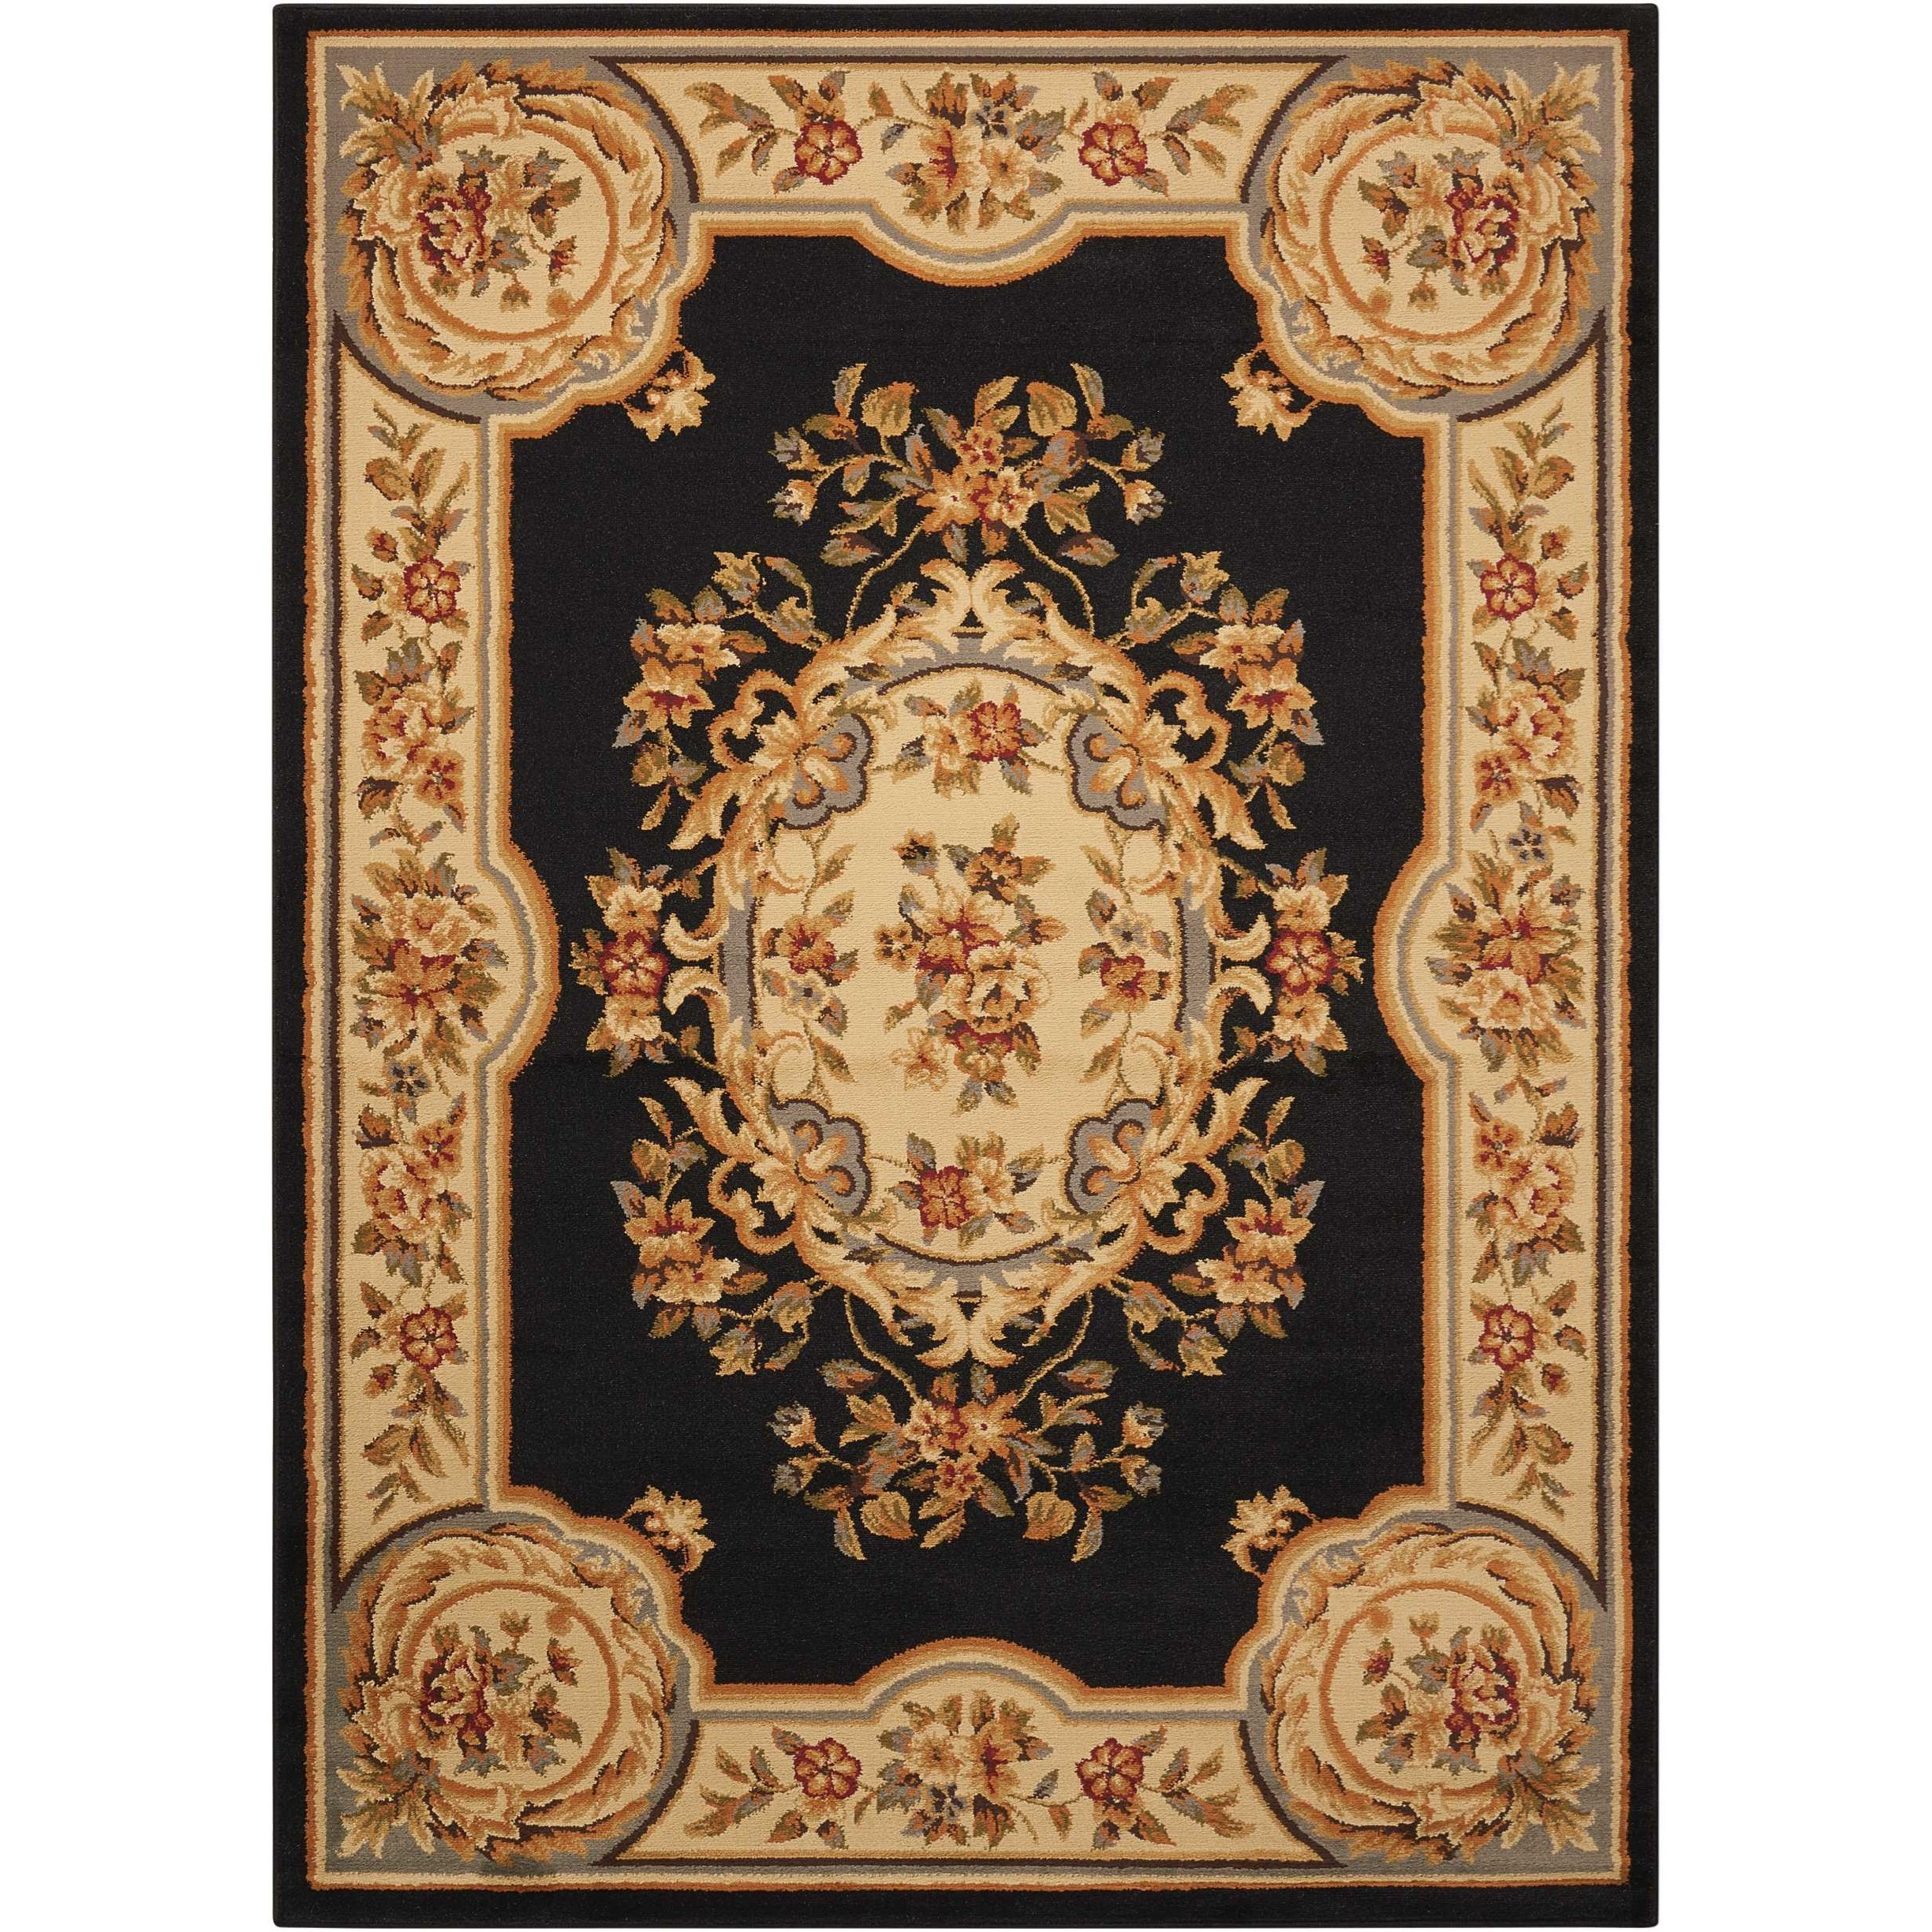 """Paramount 3'11"""" x 5'10"""" Black Rectangle Rug by Nourison at Home Collections Furniture"""